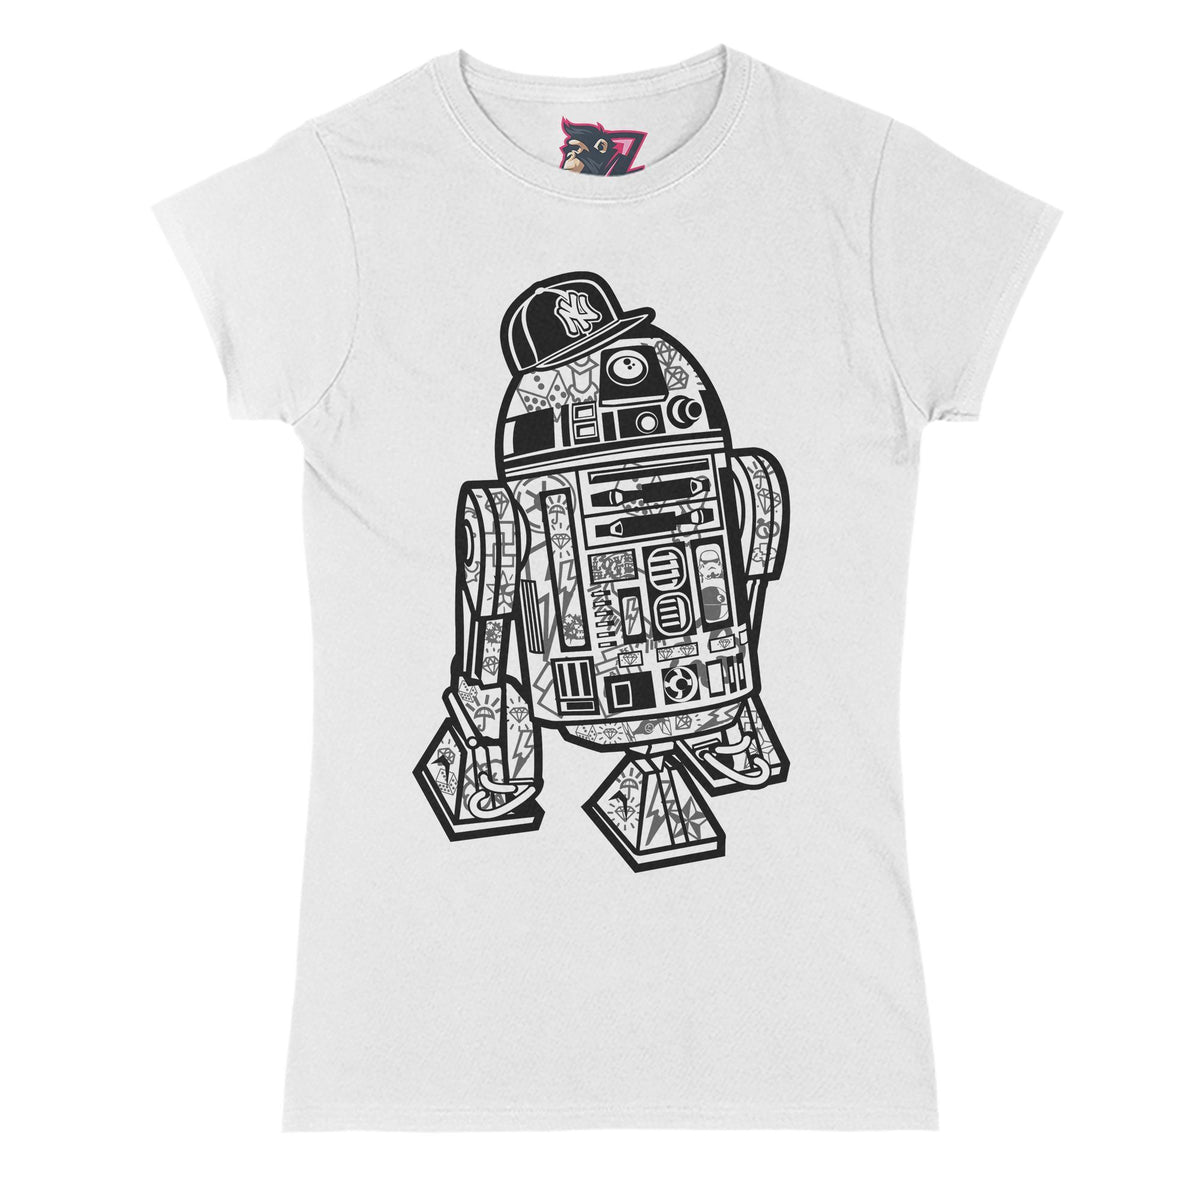 R2D2 Street Primate Novelty Women's T-Shirt Adults: S